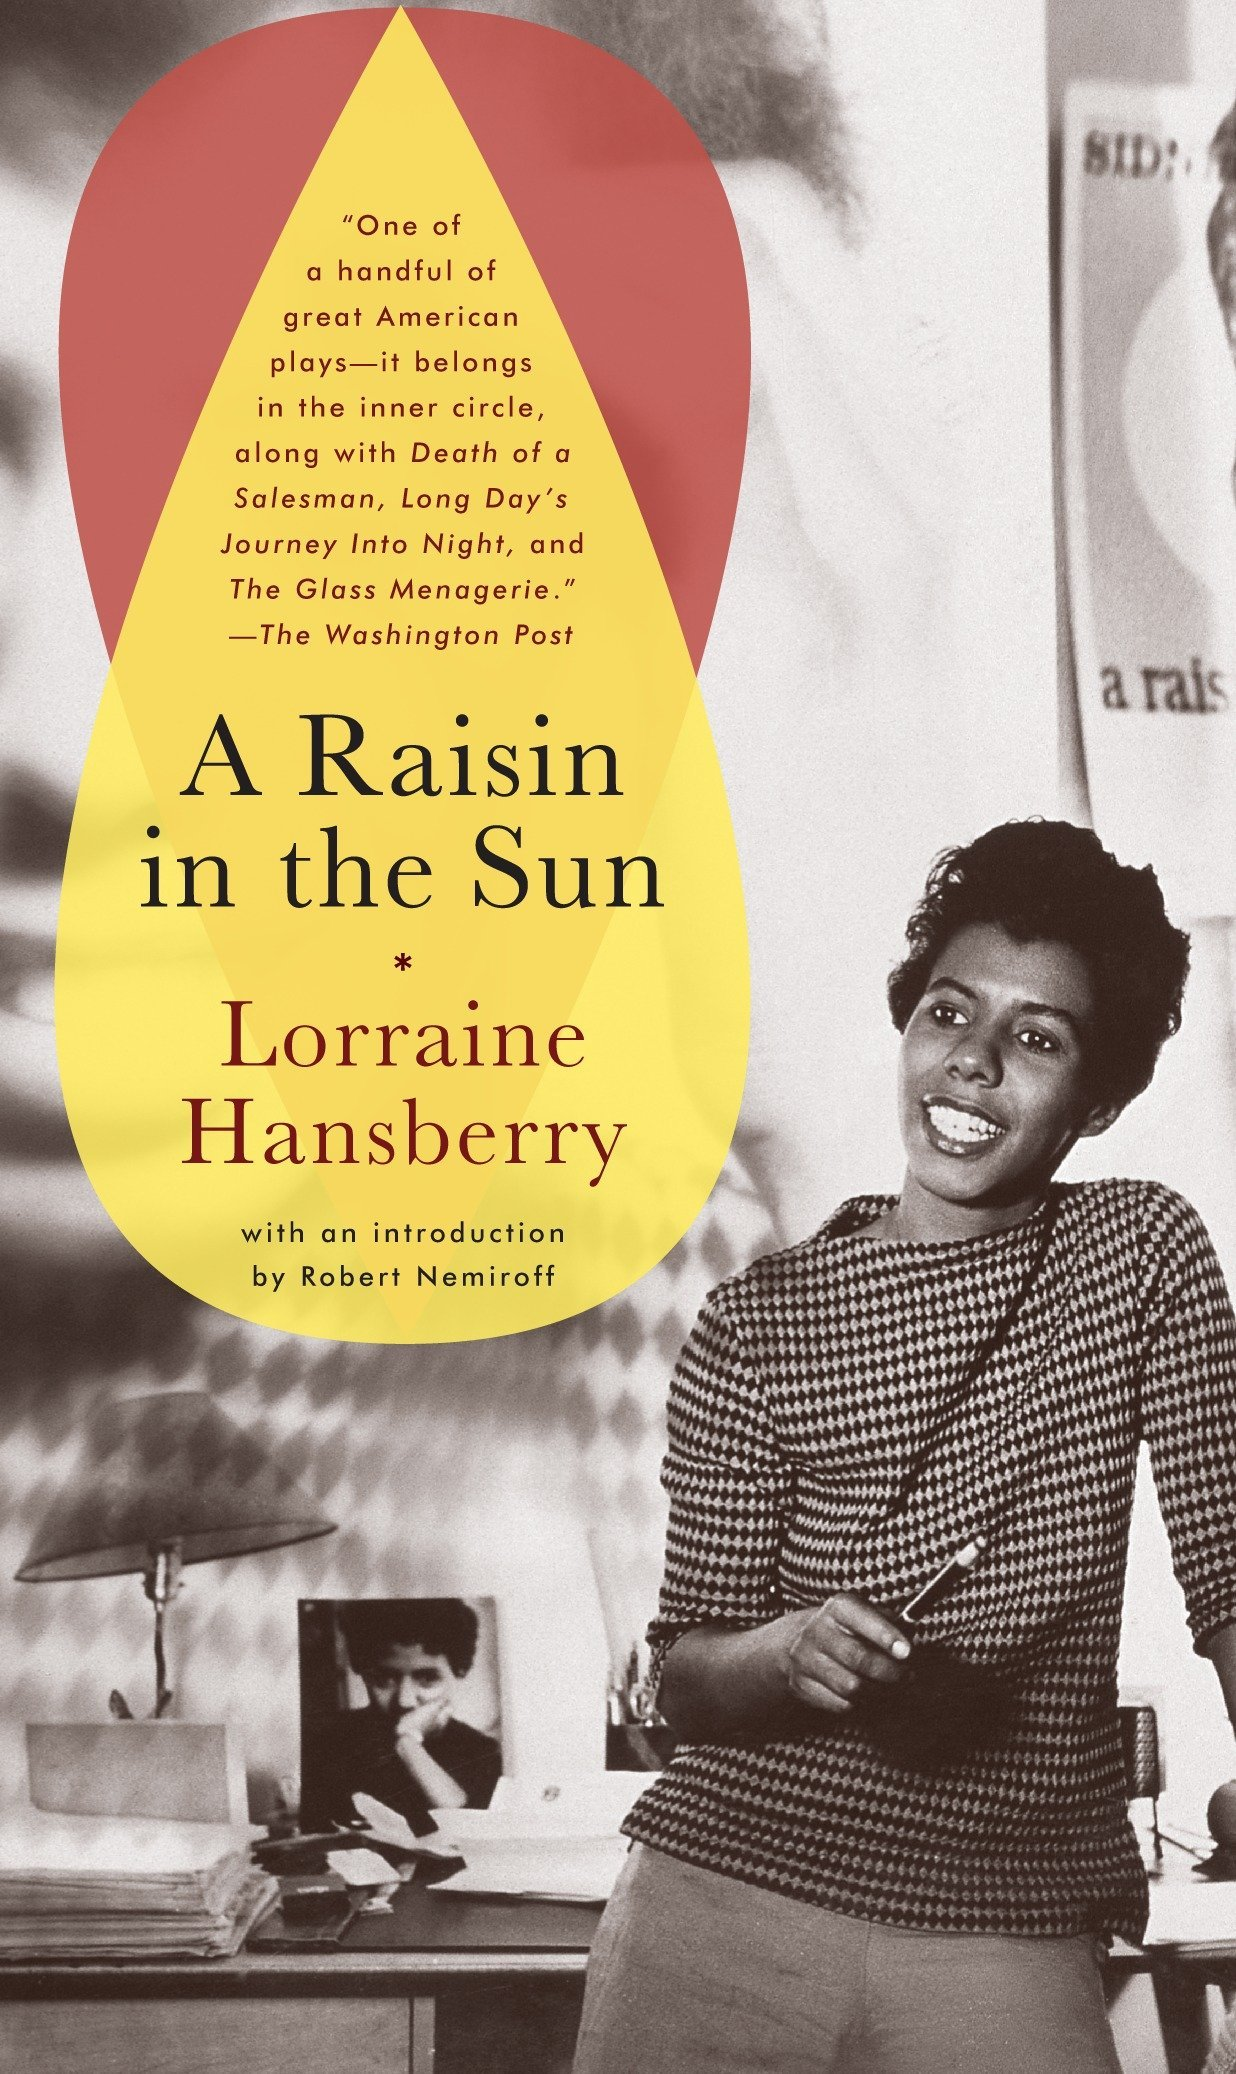 Front cover of Lorraine Hansberry's Raisin in the Sun, with an image of a smiling Hansberry